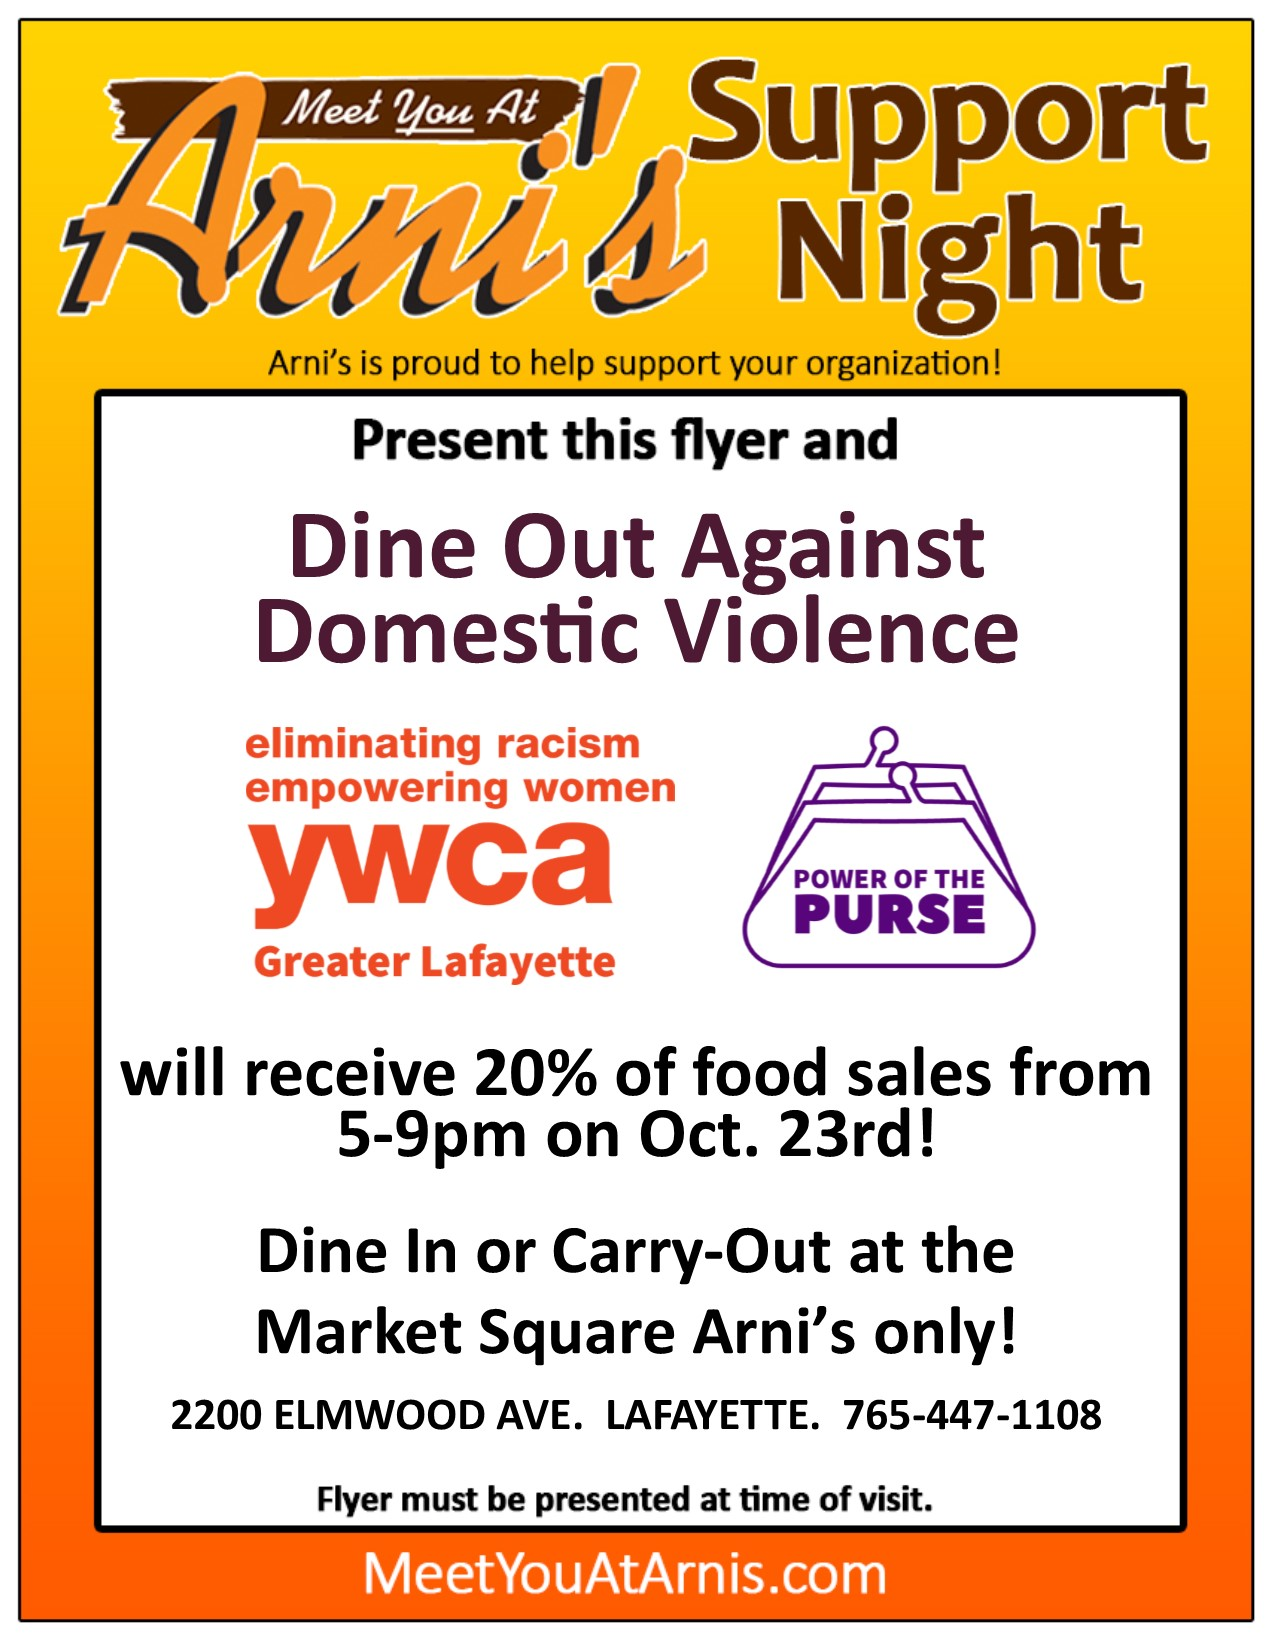 Arni's flyer to display for Dine Out Against Domestic Violence on Oct. 23, 2019